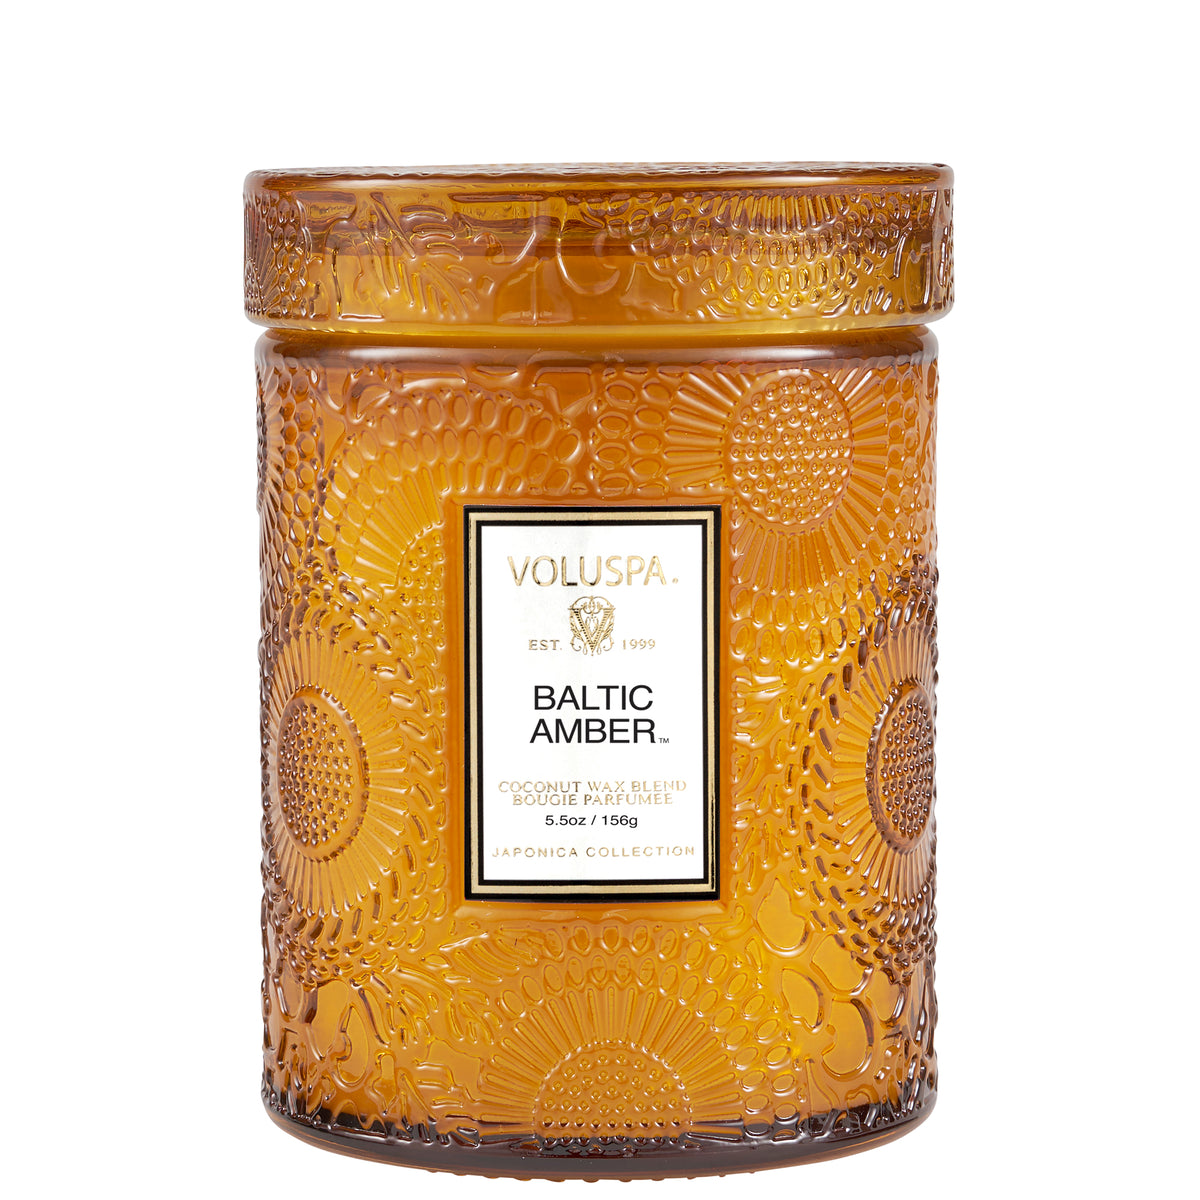 Baltic Amber - Small Jar Candle - 1